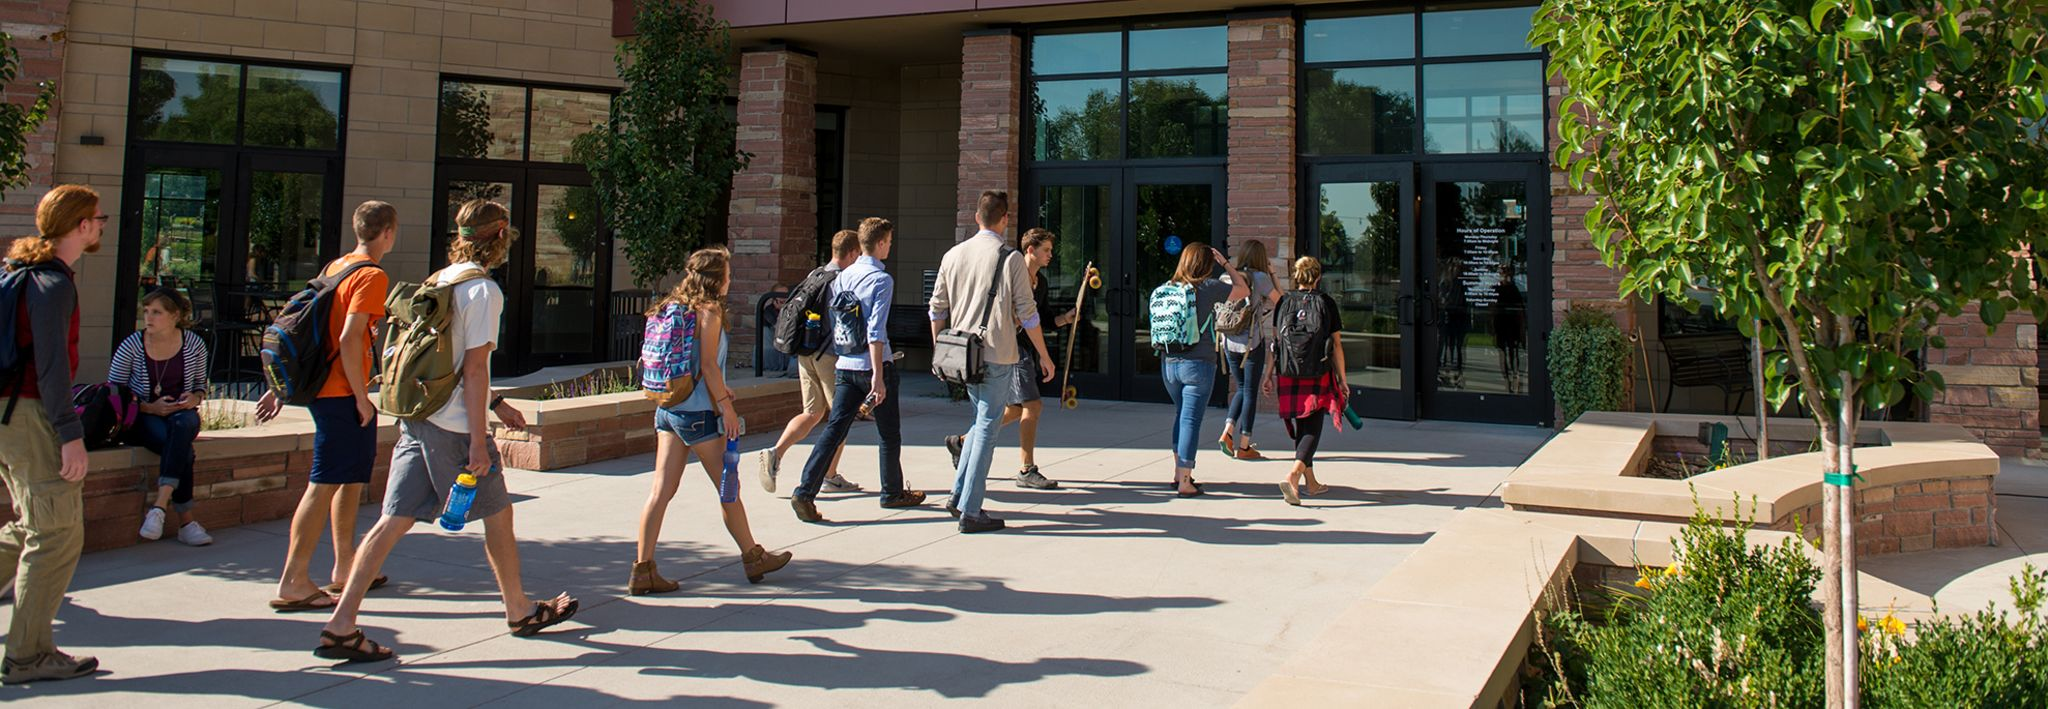 CCU undergraduate students going in to Leprino Hall.